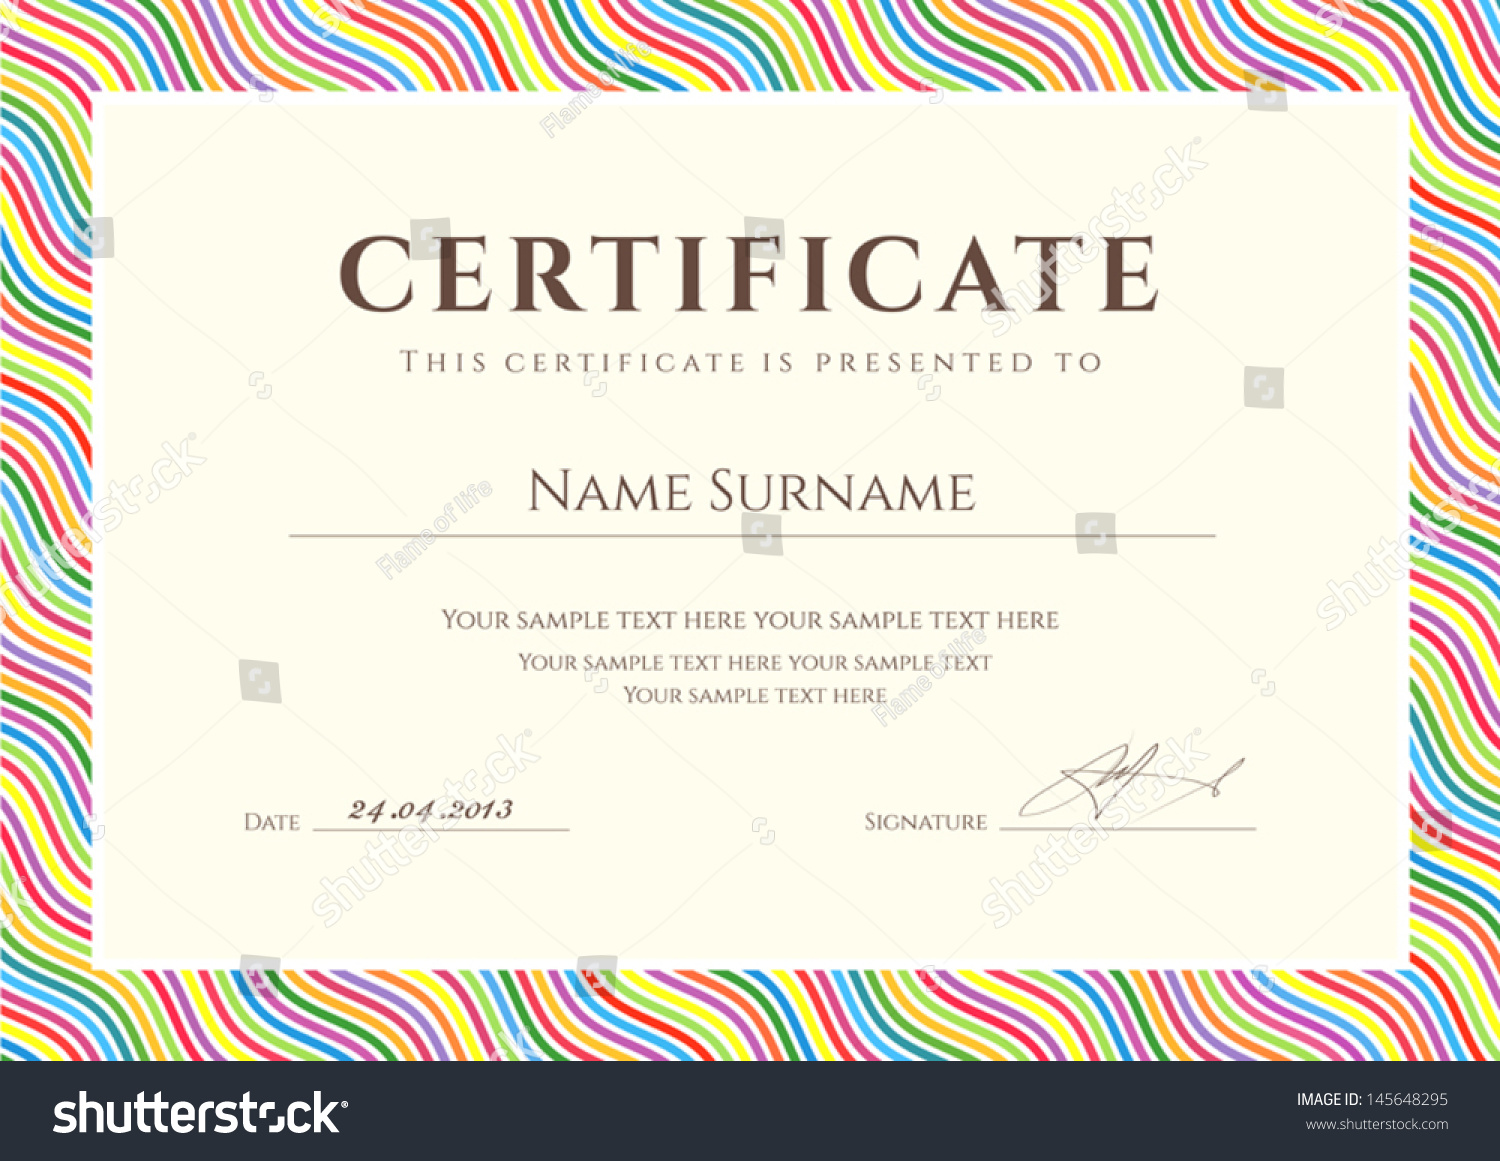 Royaltyfree Certificate of completion template or 145648295 – Certificate of Completion Sample